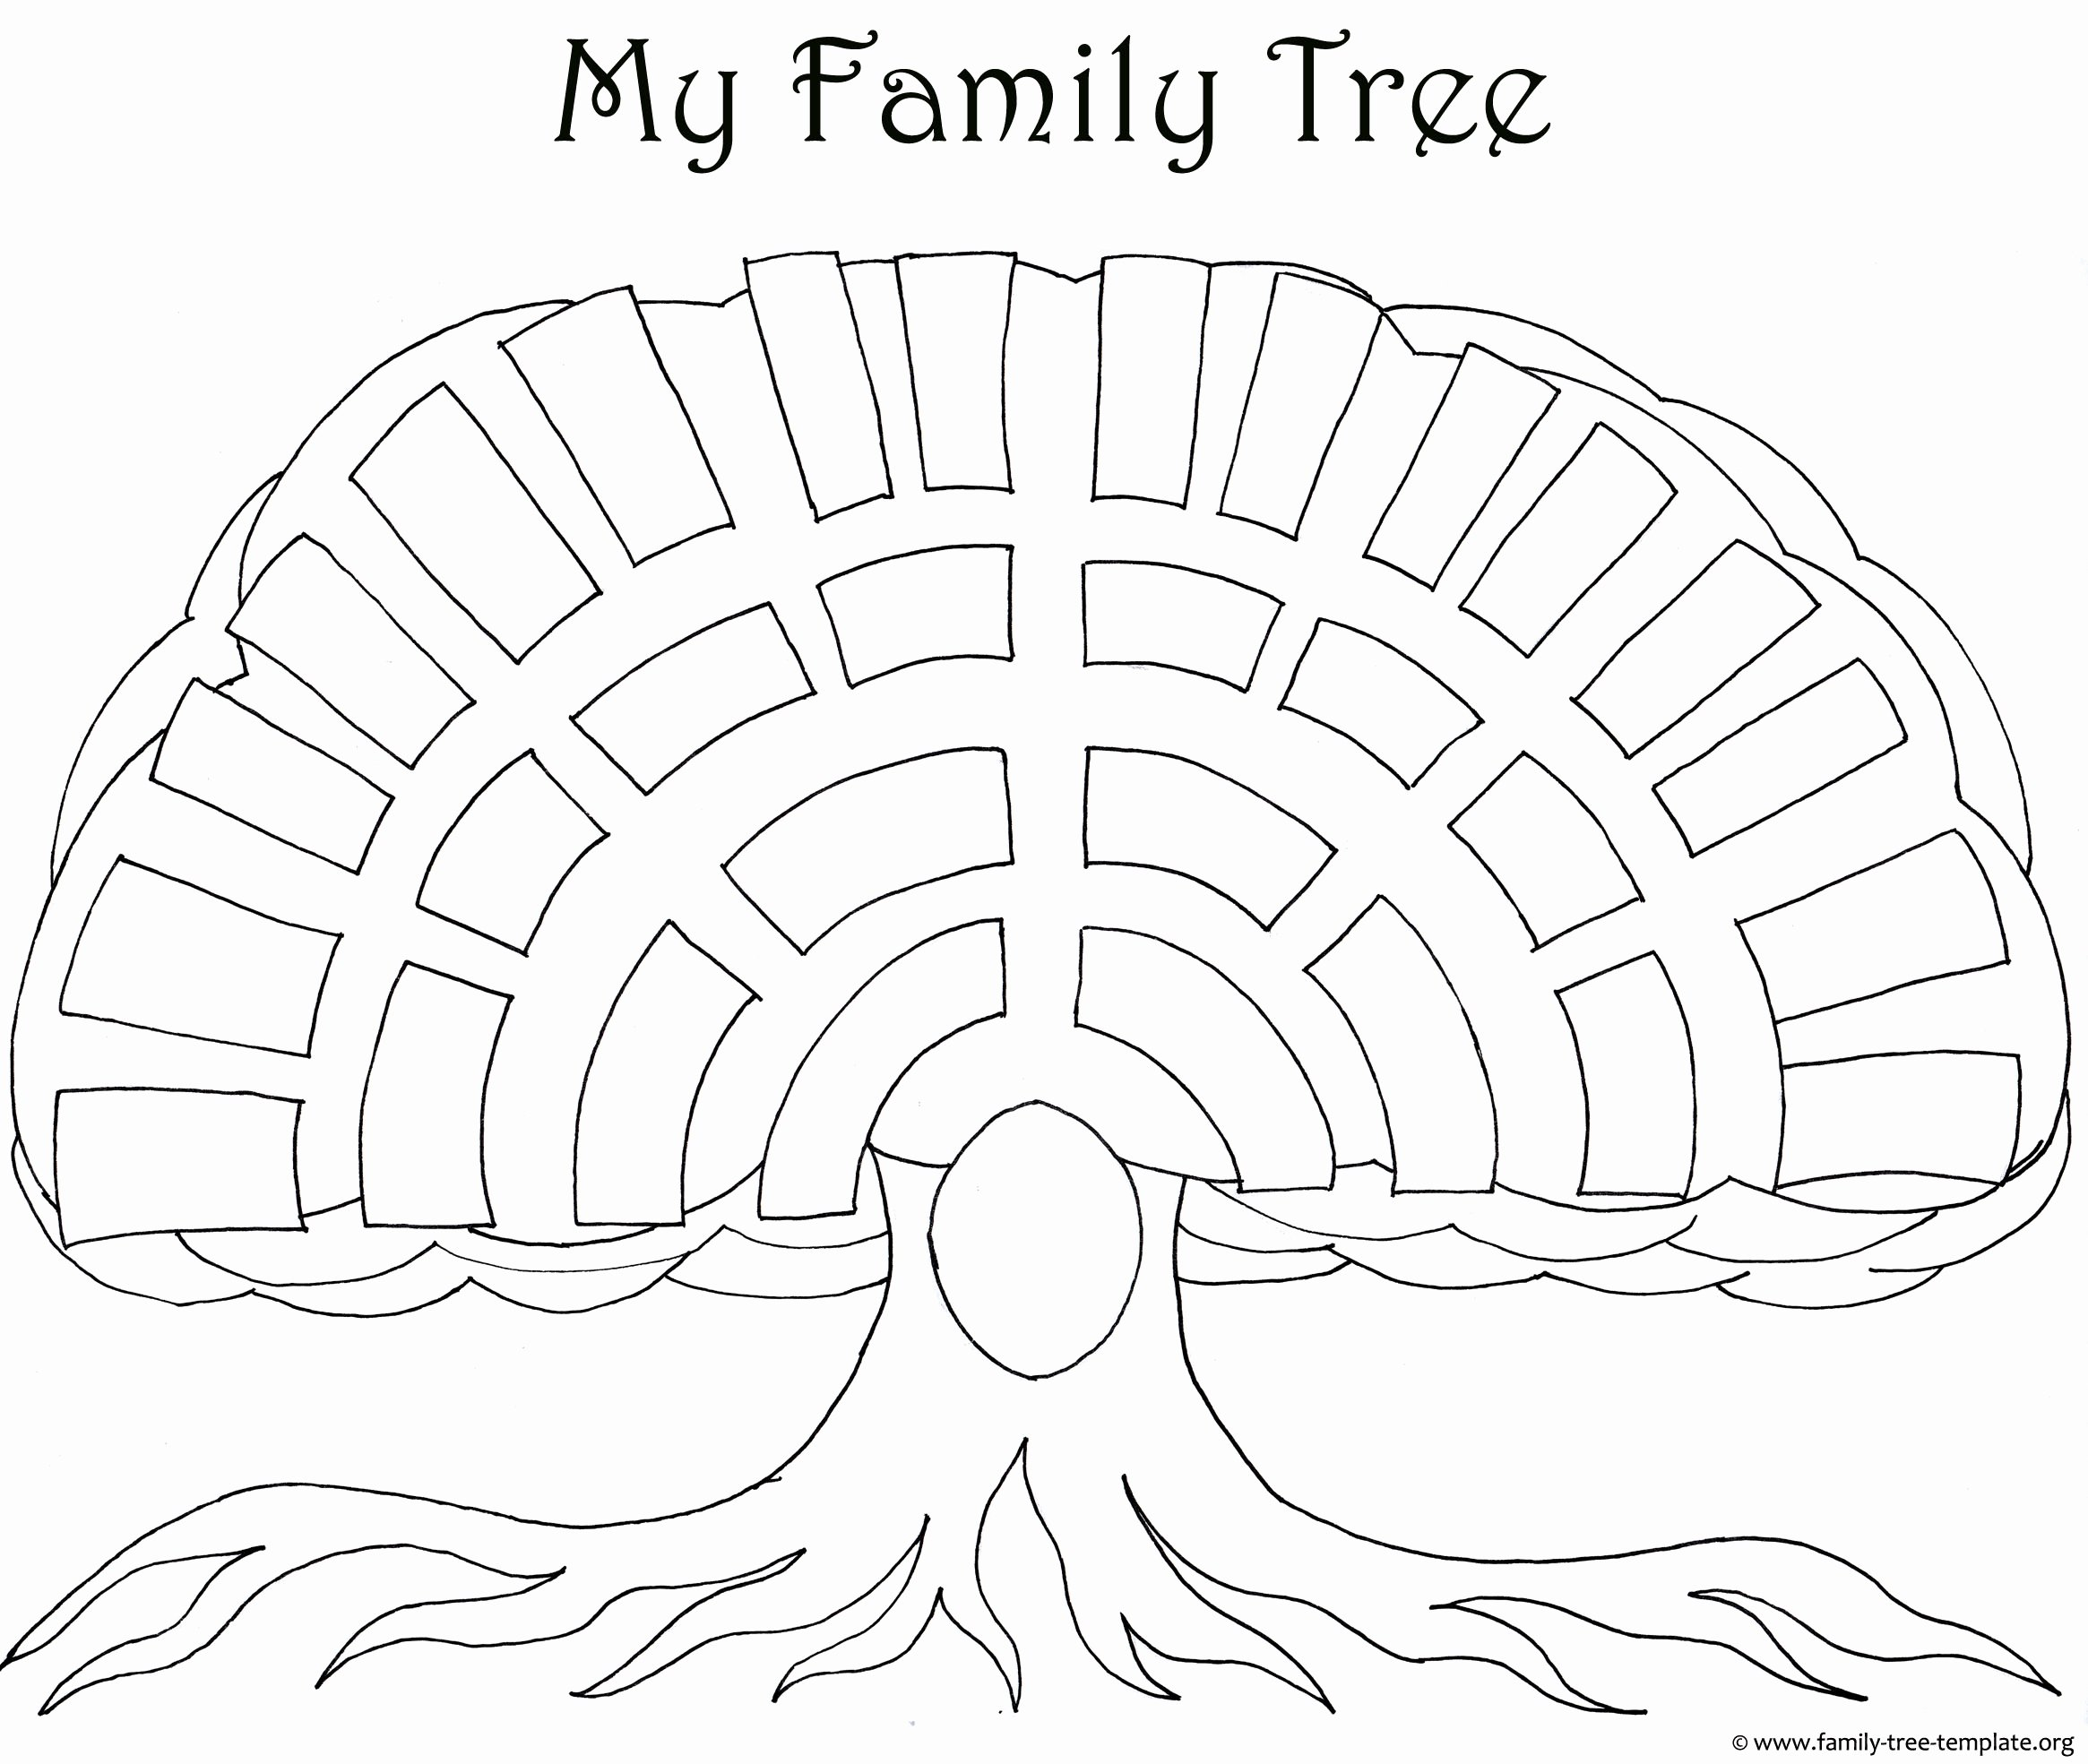 Family Tree Images to Print New Family Tree Templates & Genealogy Clipart for Your